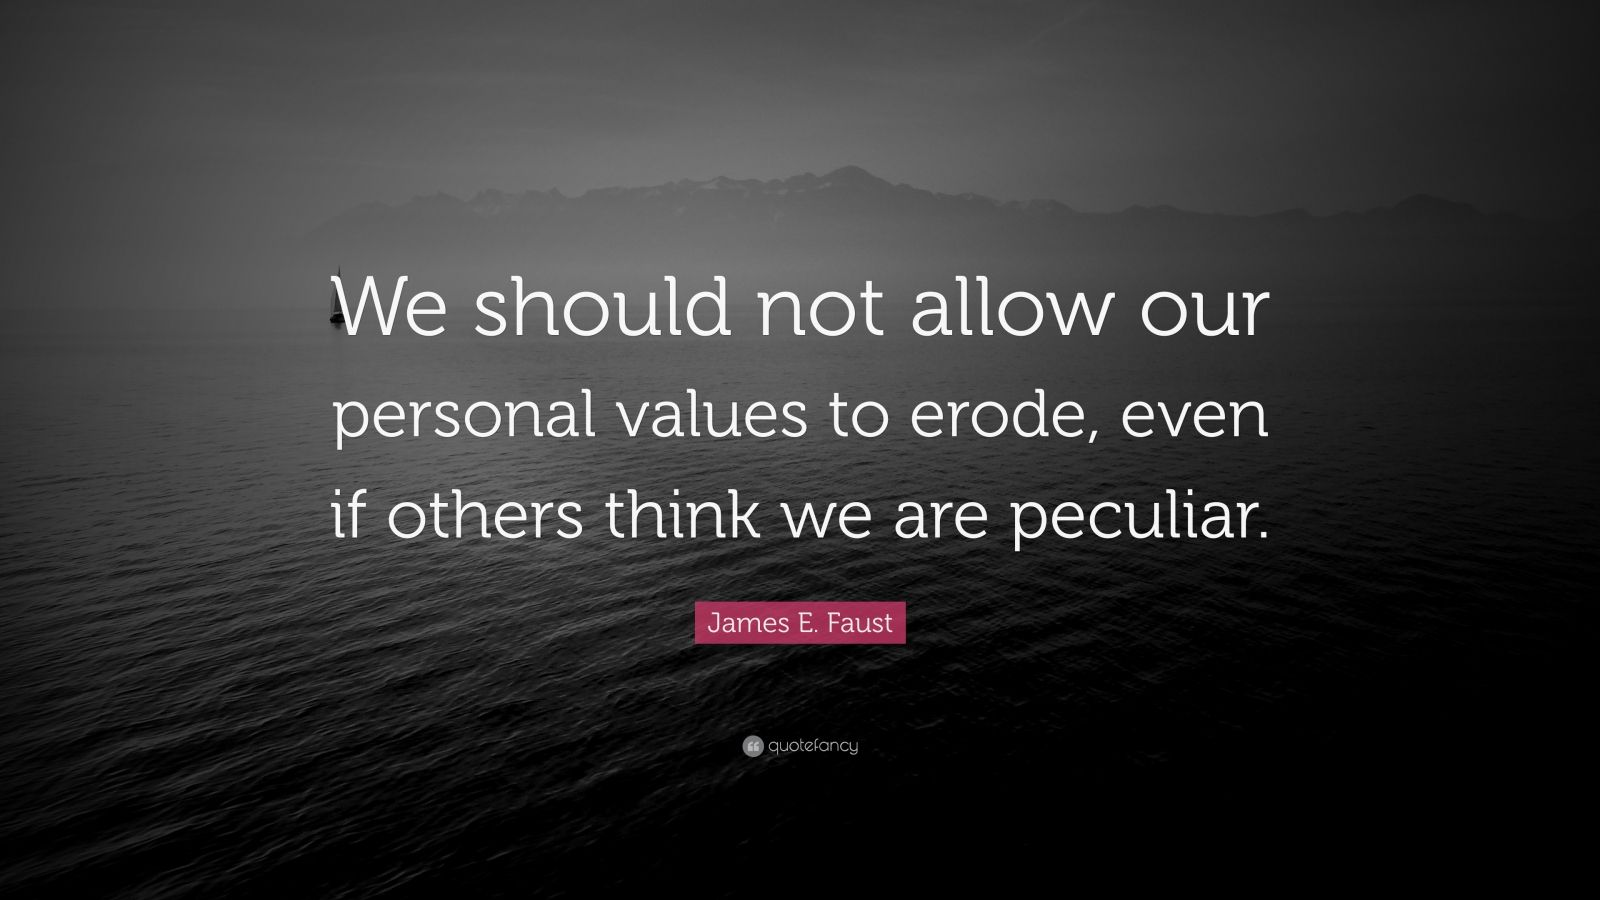 """James E. Faust Quote: """"We should not allow our personal values to erode, even if others think we are peculiar."""""""